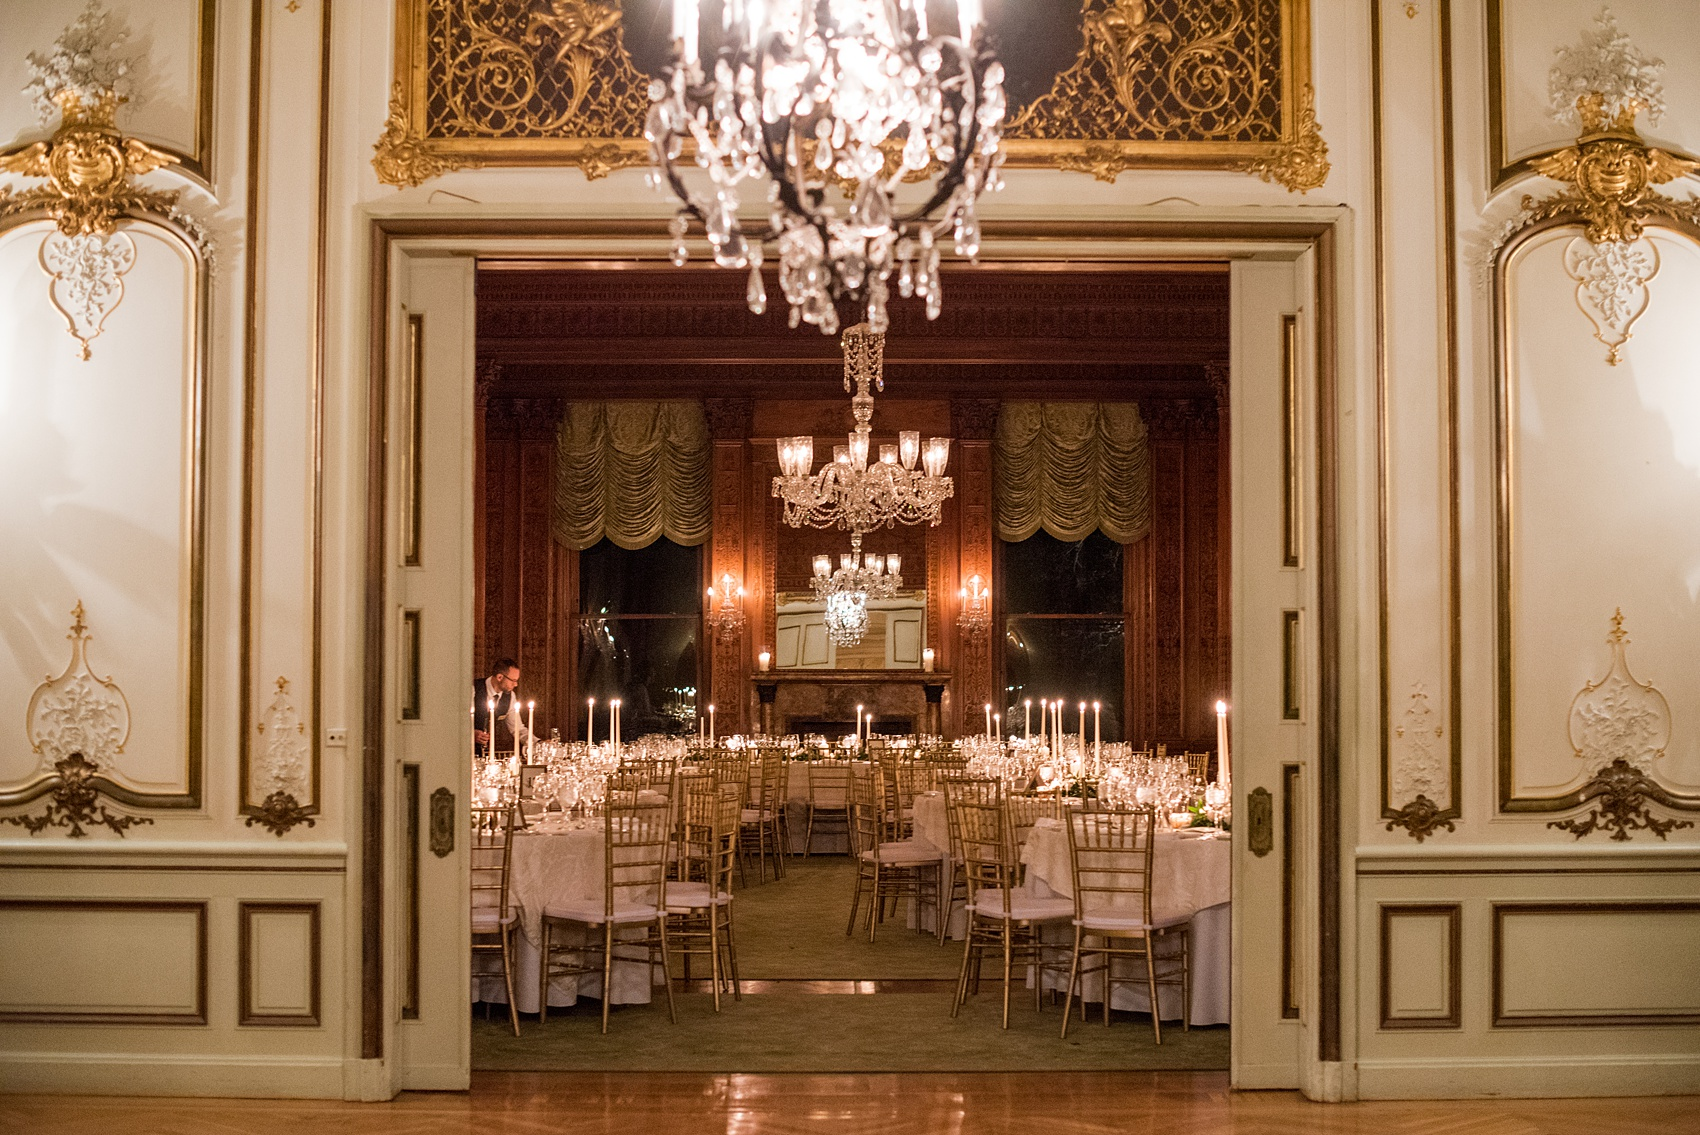 Wedding photos at Sleepy Hollow Country Club for a winter reception in January by Mikkel Paige Photography. Their ornate, European inspired New York winter wedding venue was decorated with gold and white accents.